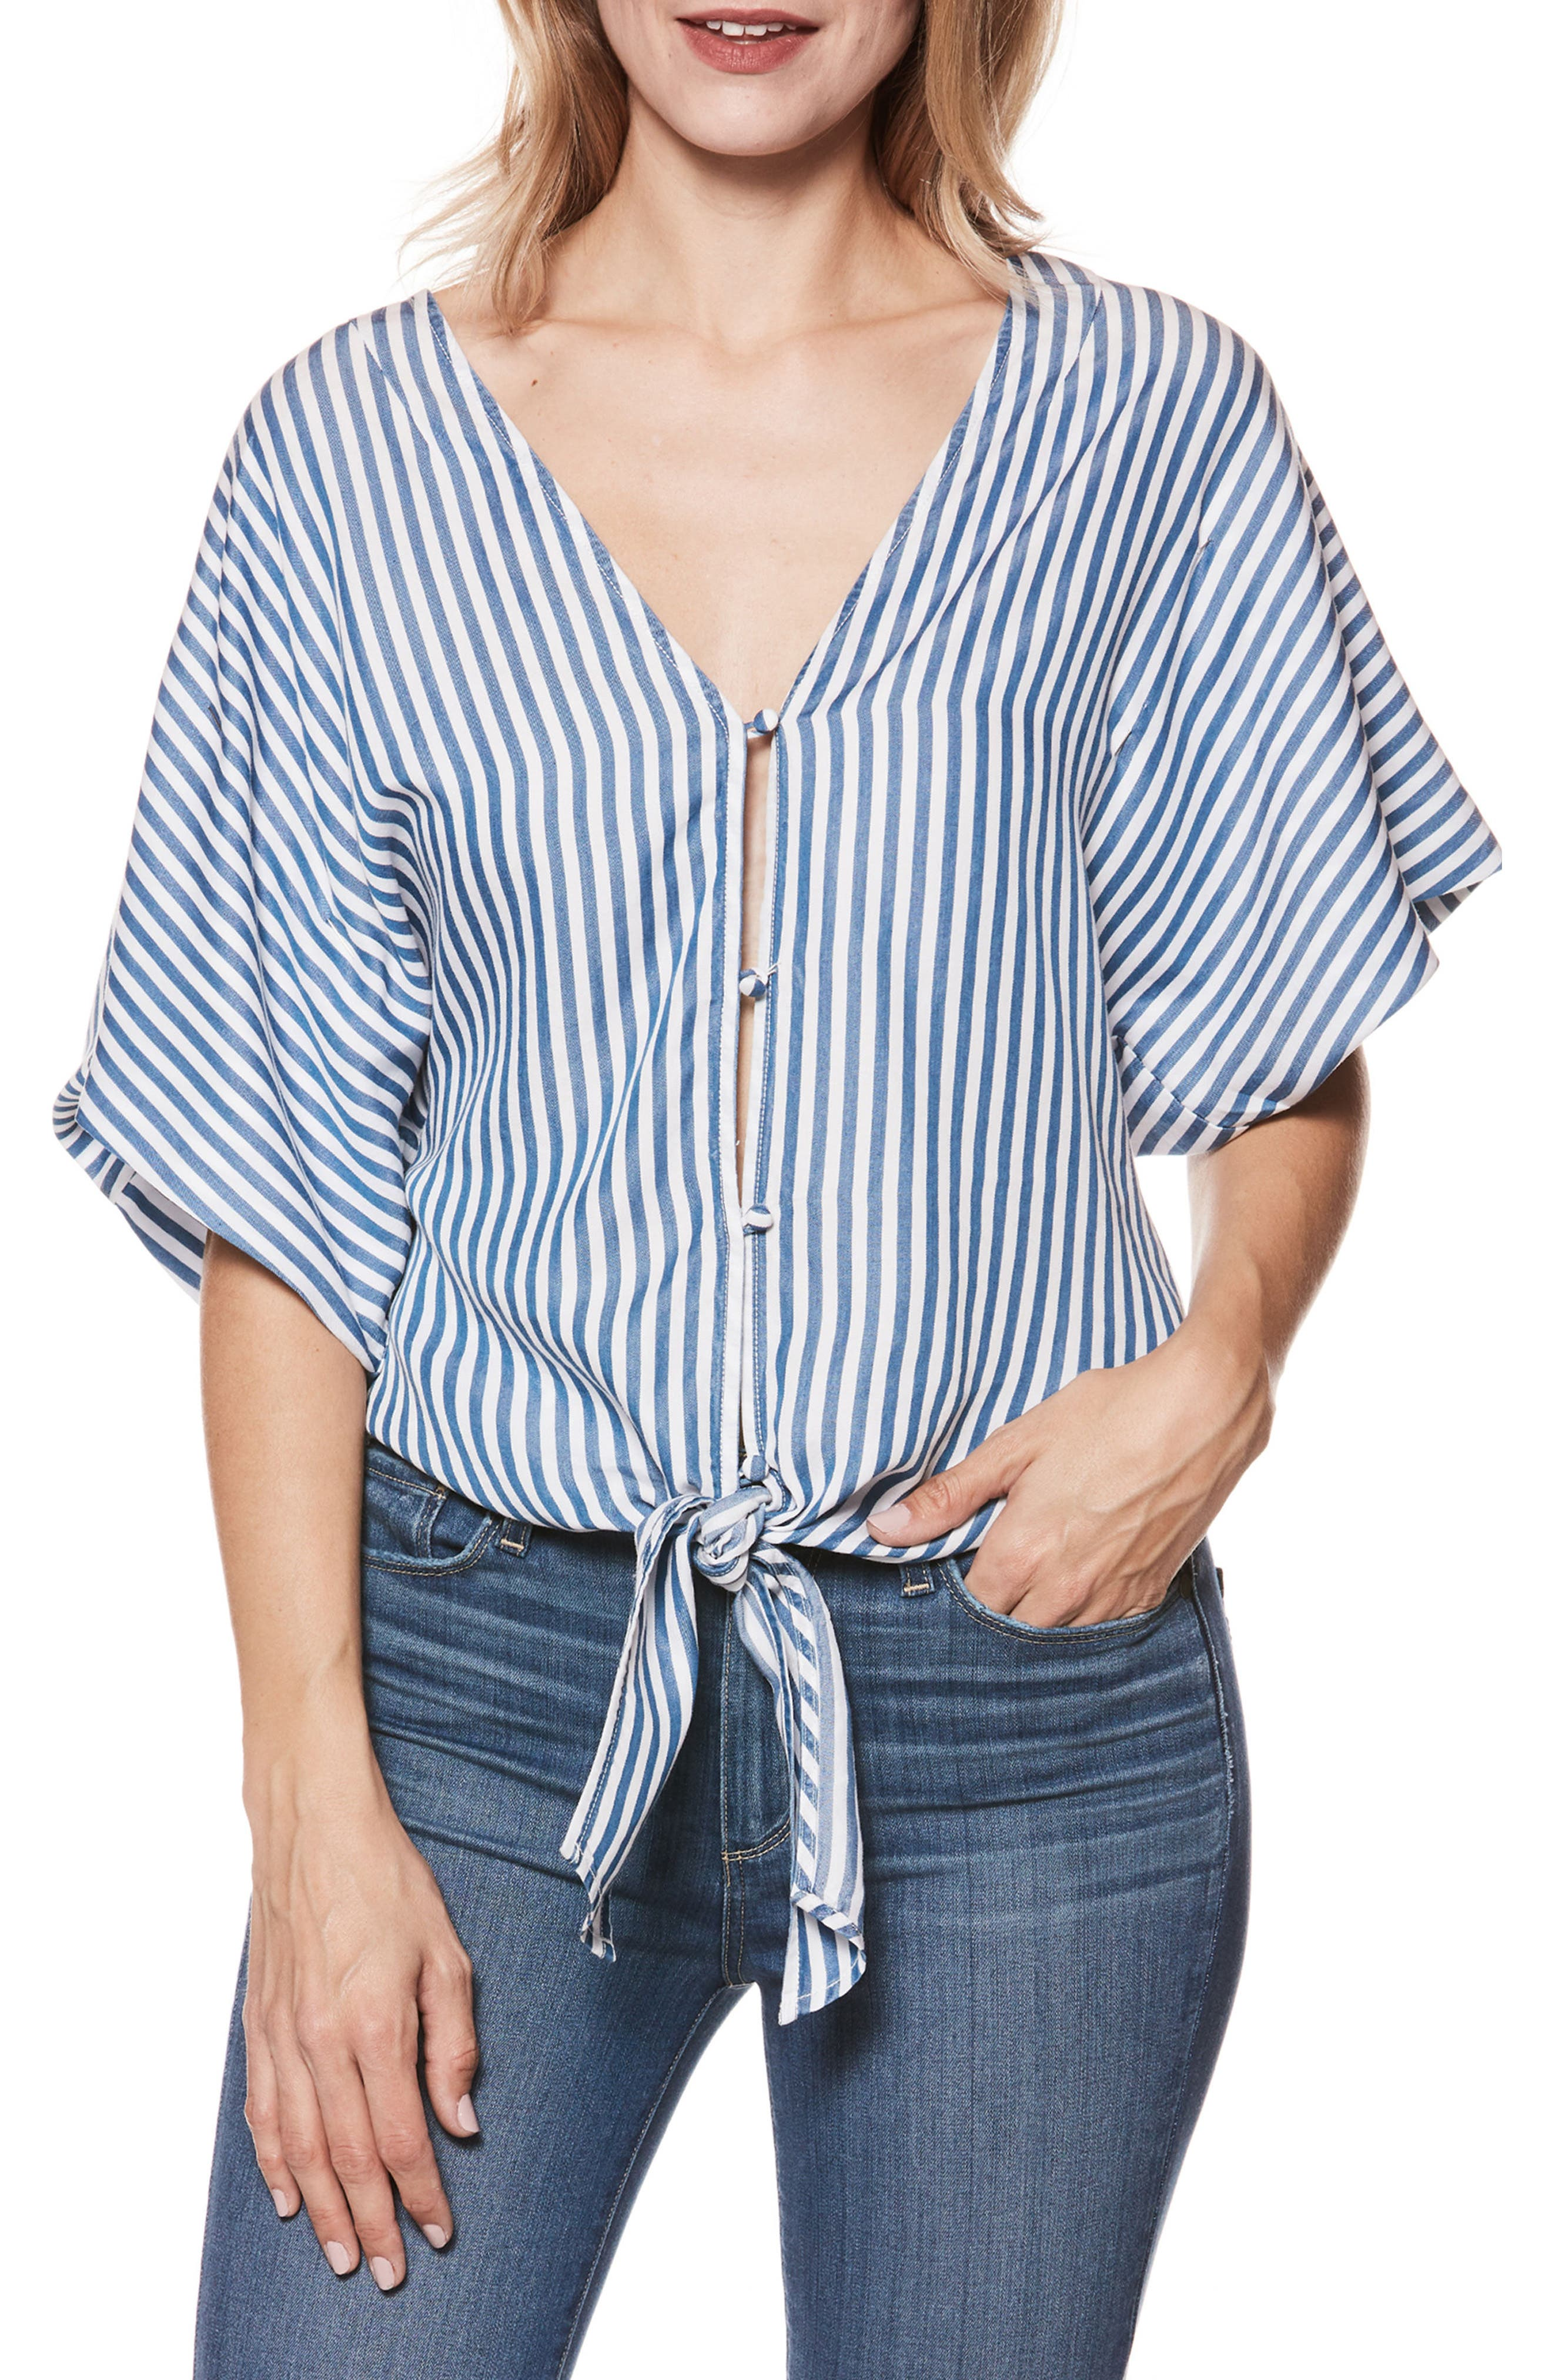 Baylee Top,                         Main,                         color, White / Blue Bell Stripe